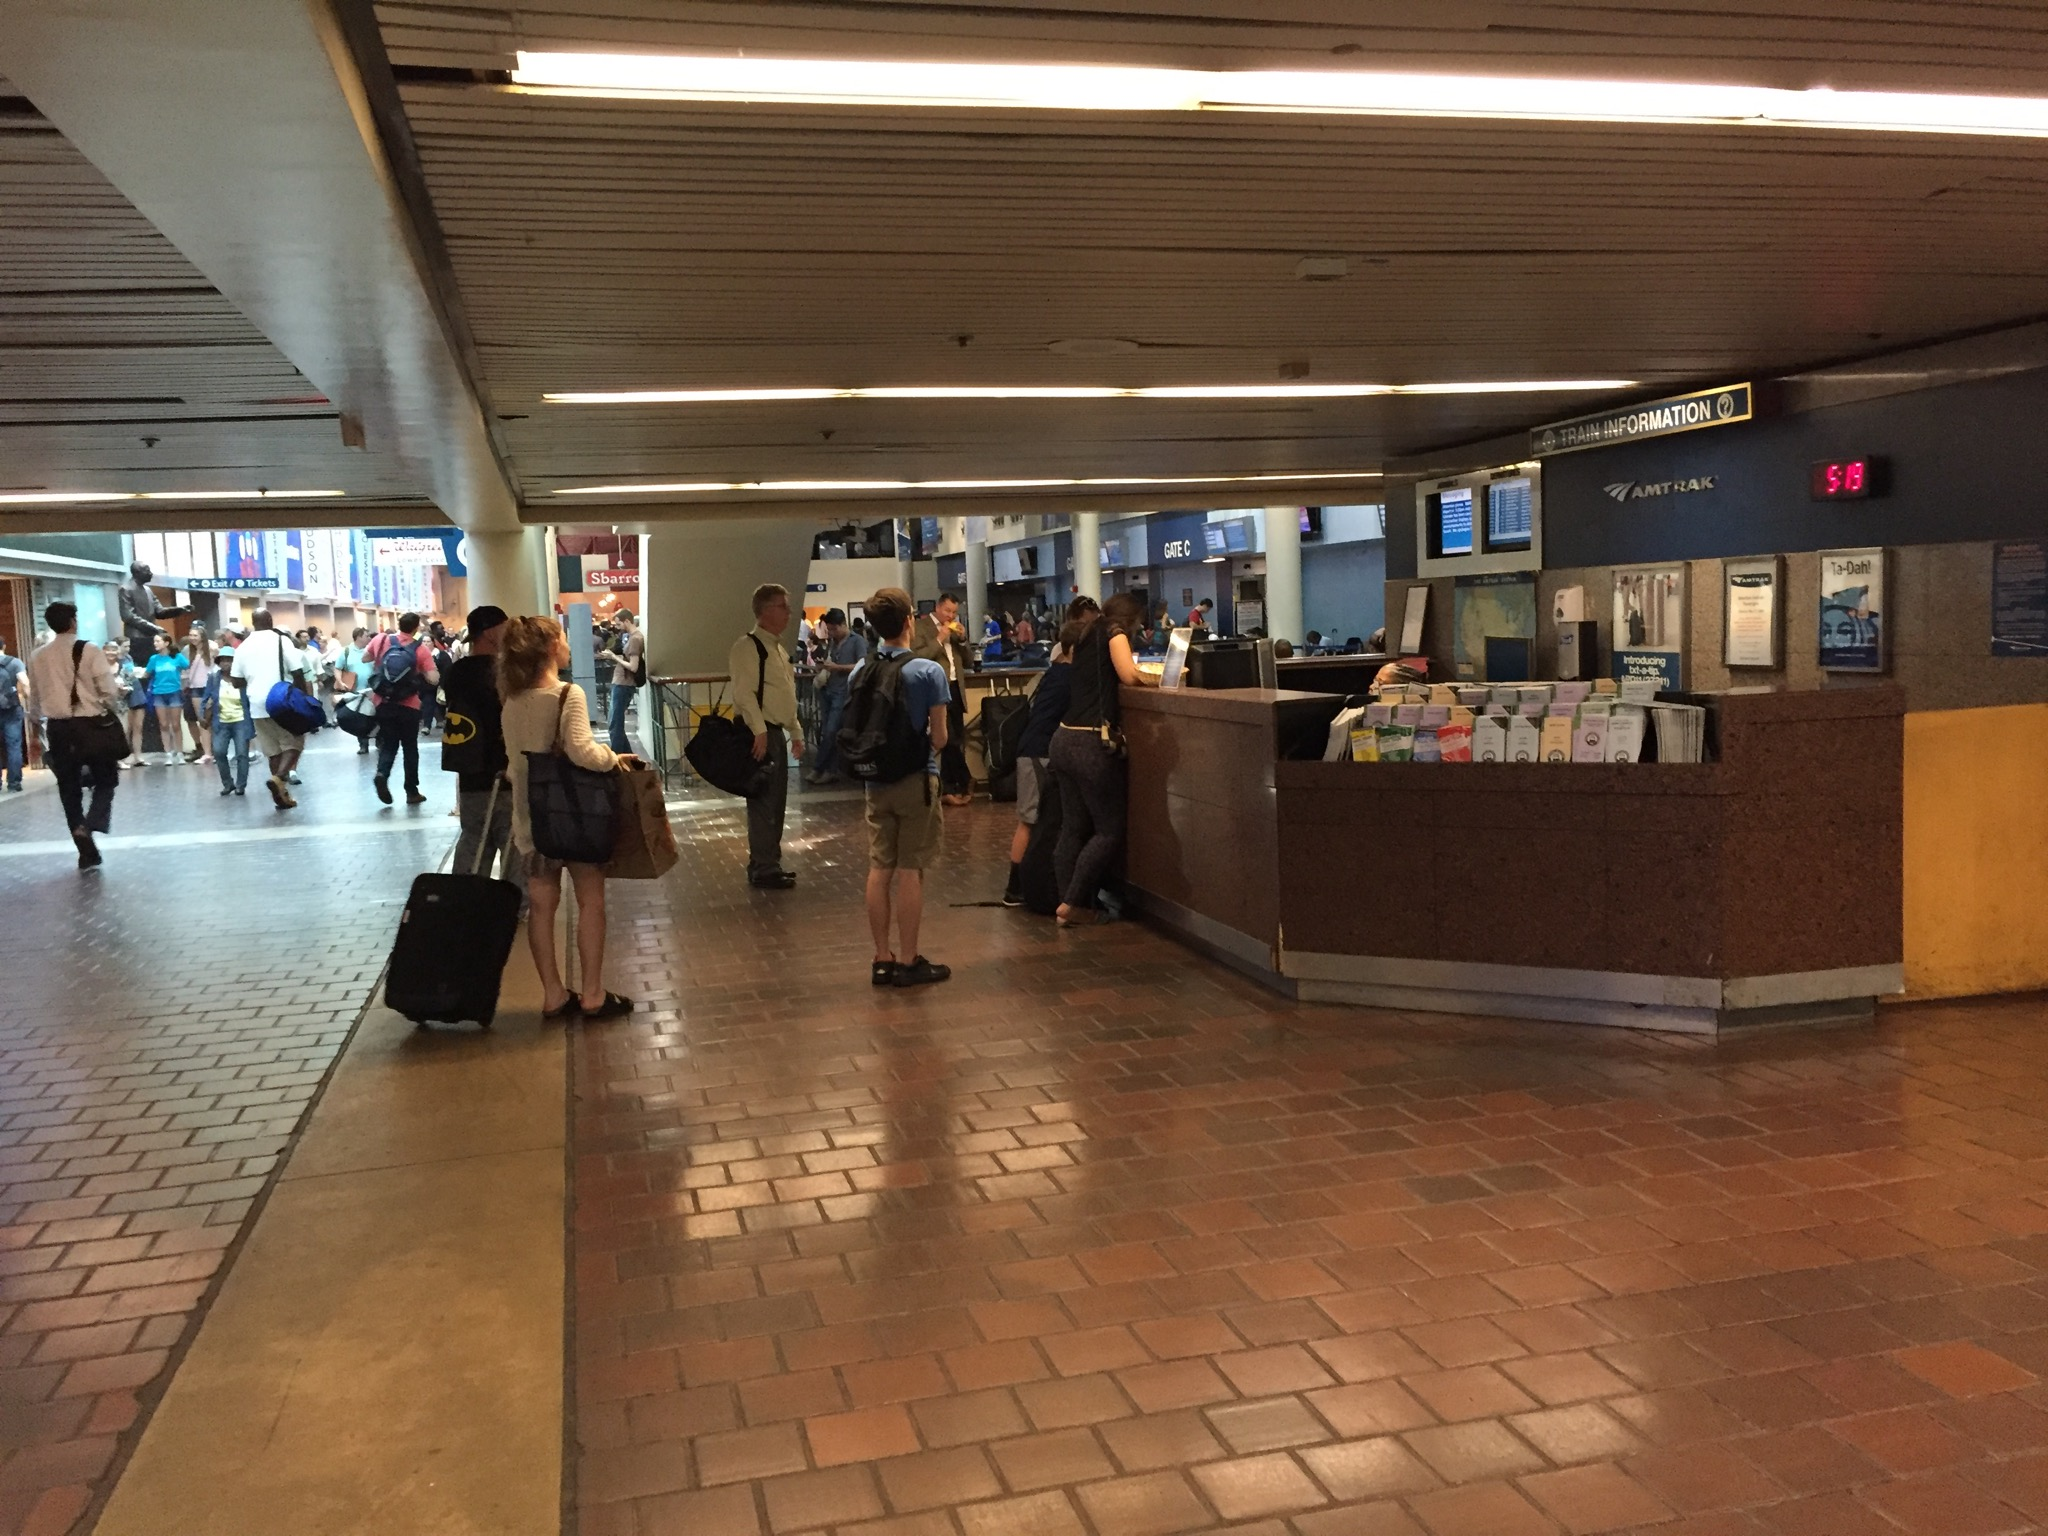 Union Stations concourse could get a big facelift